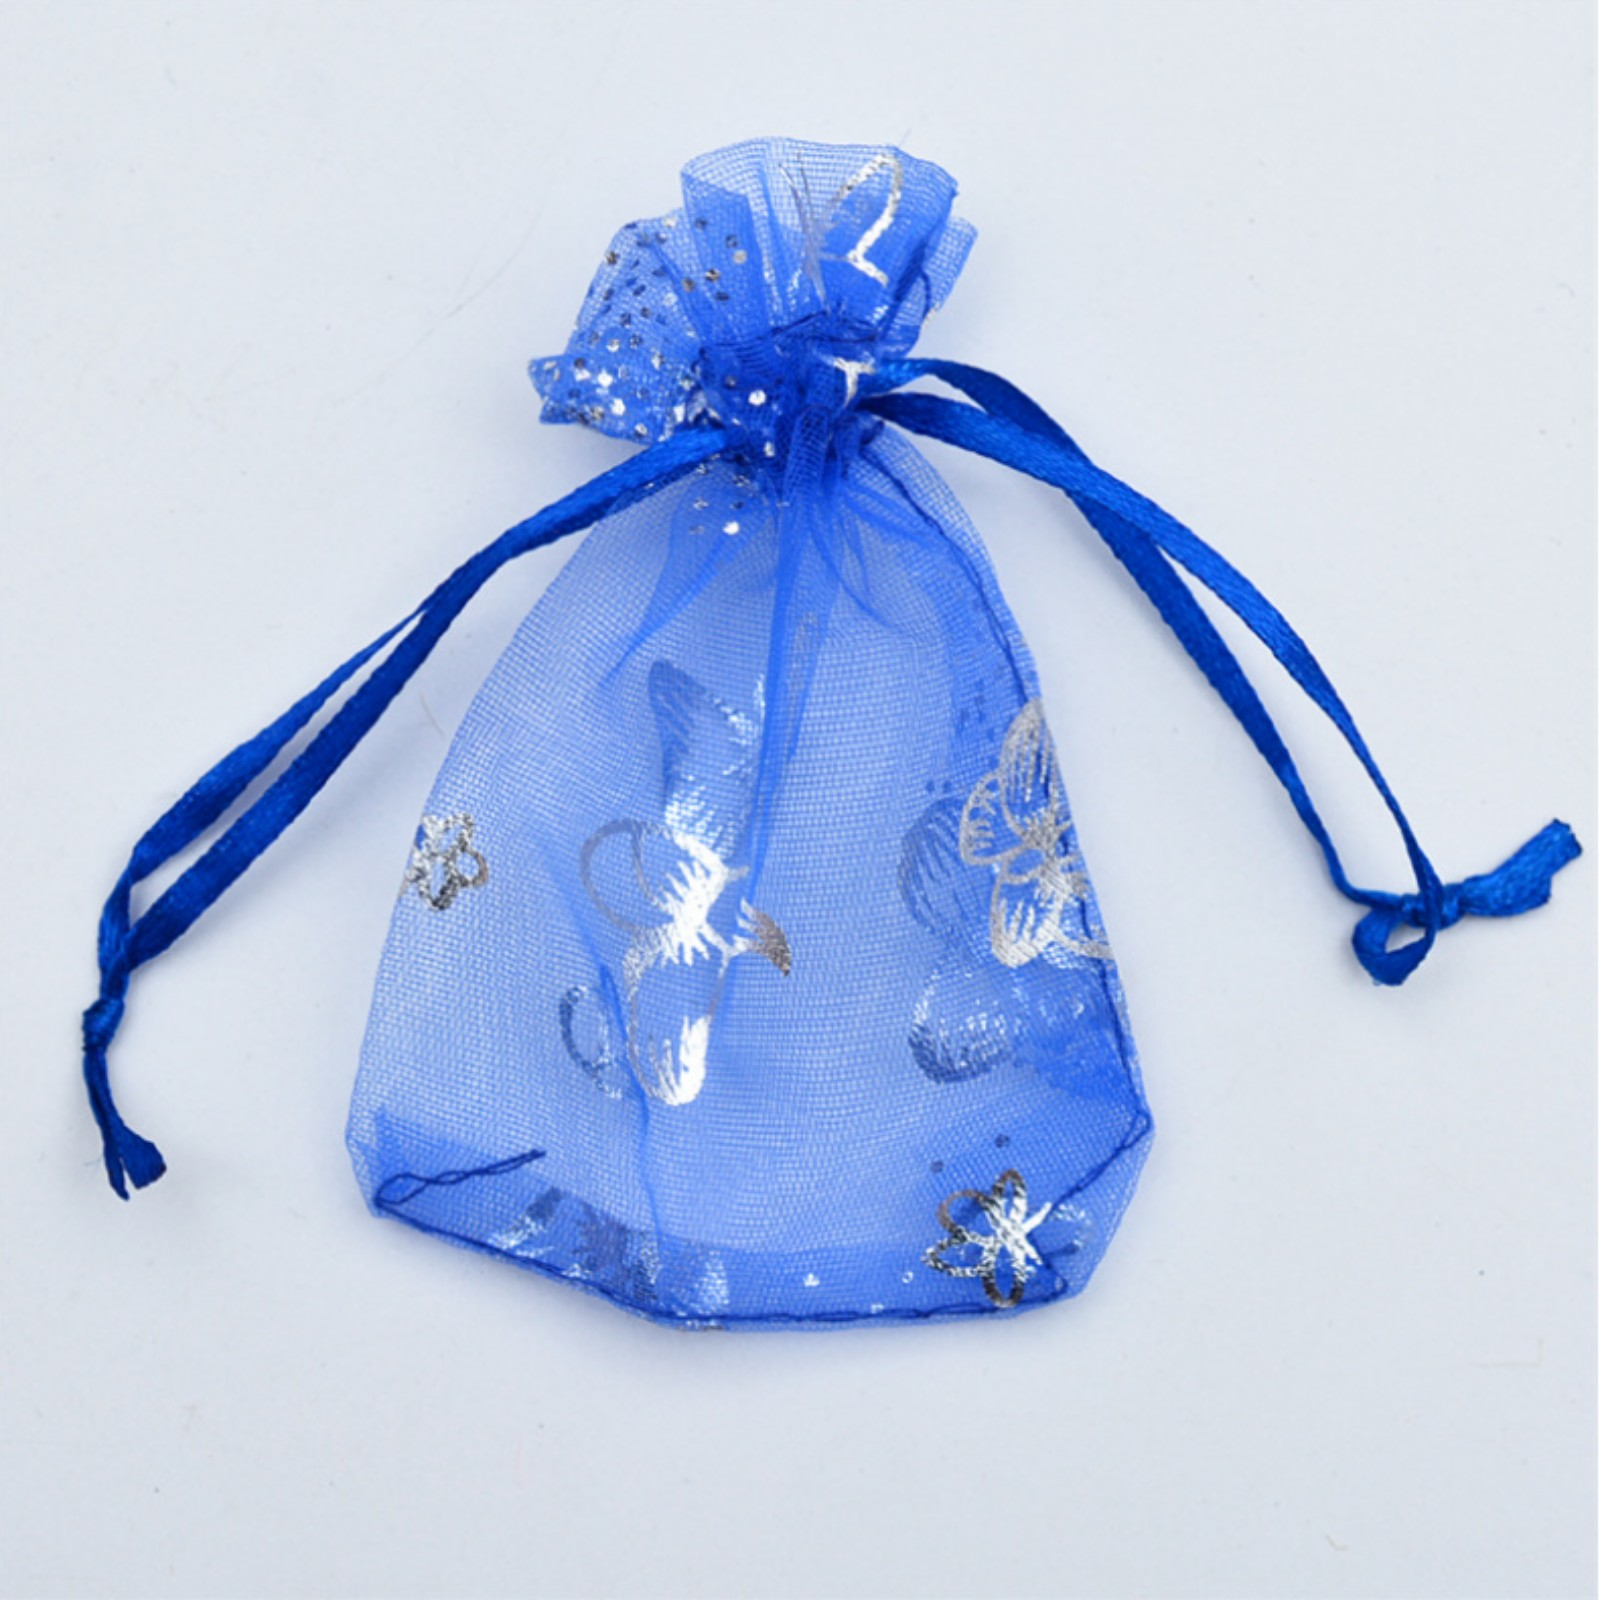 Organza Bags 100pcs Wedding Favour Bags Buff for Gifts Jewelry with Drawstring Pouches Wrap Small 7cm x 9cm